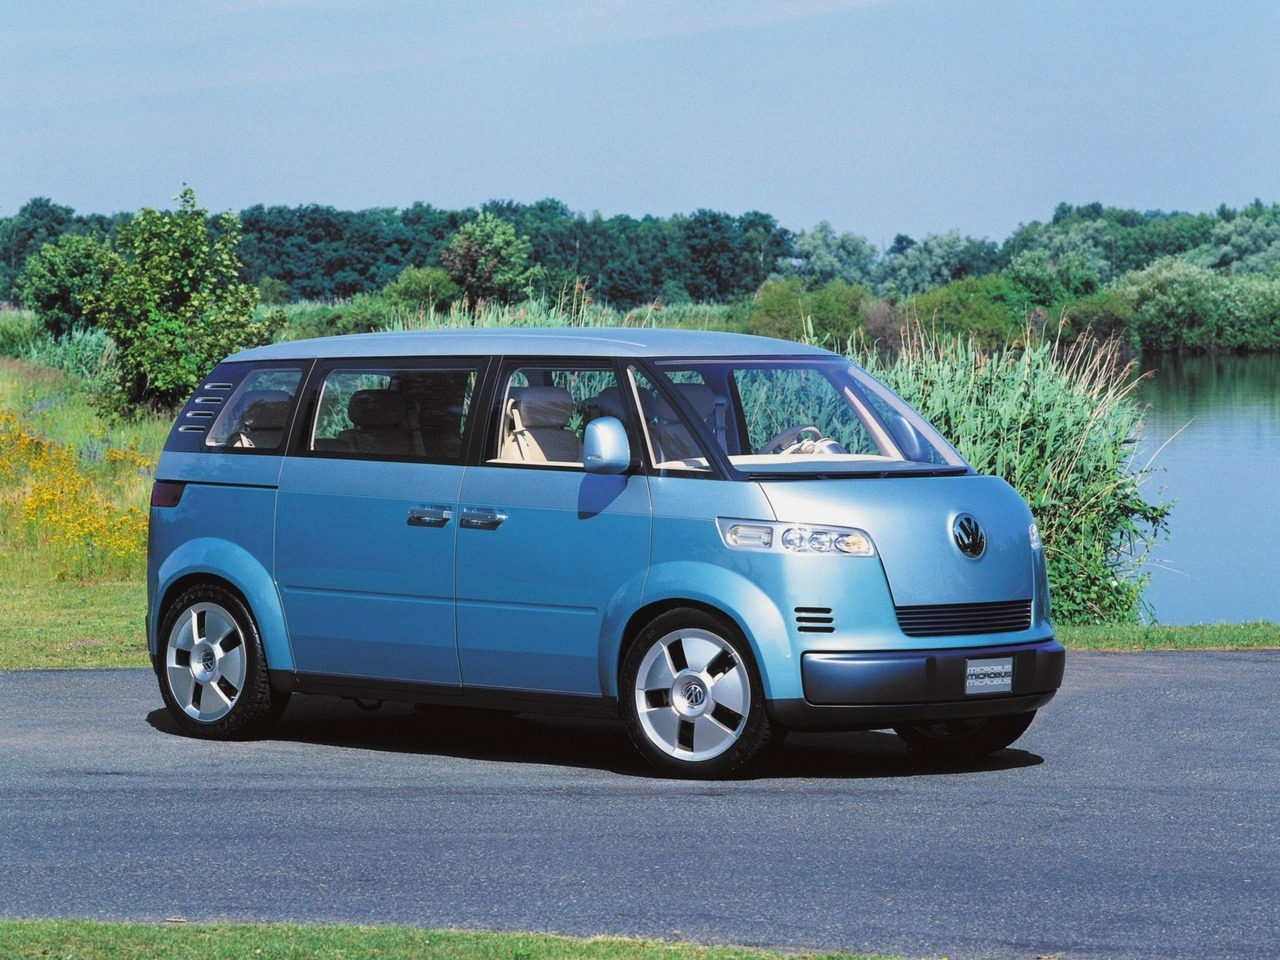 Toyota Trucks For Sale Near Me >> Volkswagen Microbus Concept (2001) - Old Concept Cars